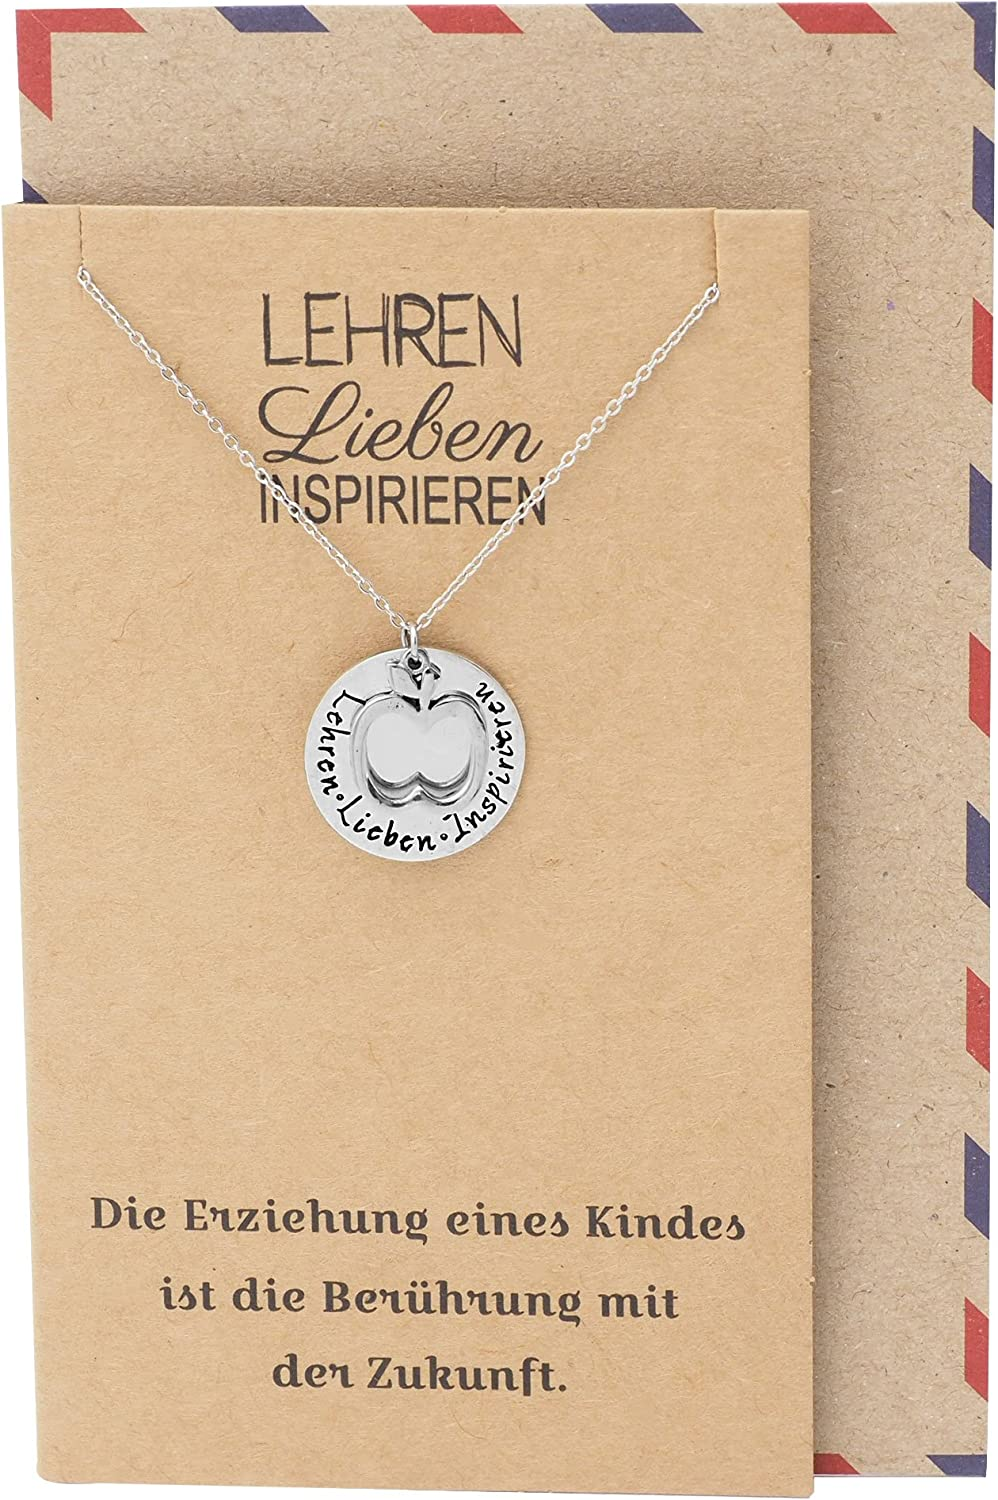 Quan Jewelry Teacher Appreciation Gifts, German Inscription Apple Pendant Necklace, Teacher Gifts for Women with Inspirational Greeting Card